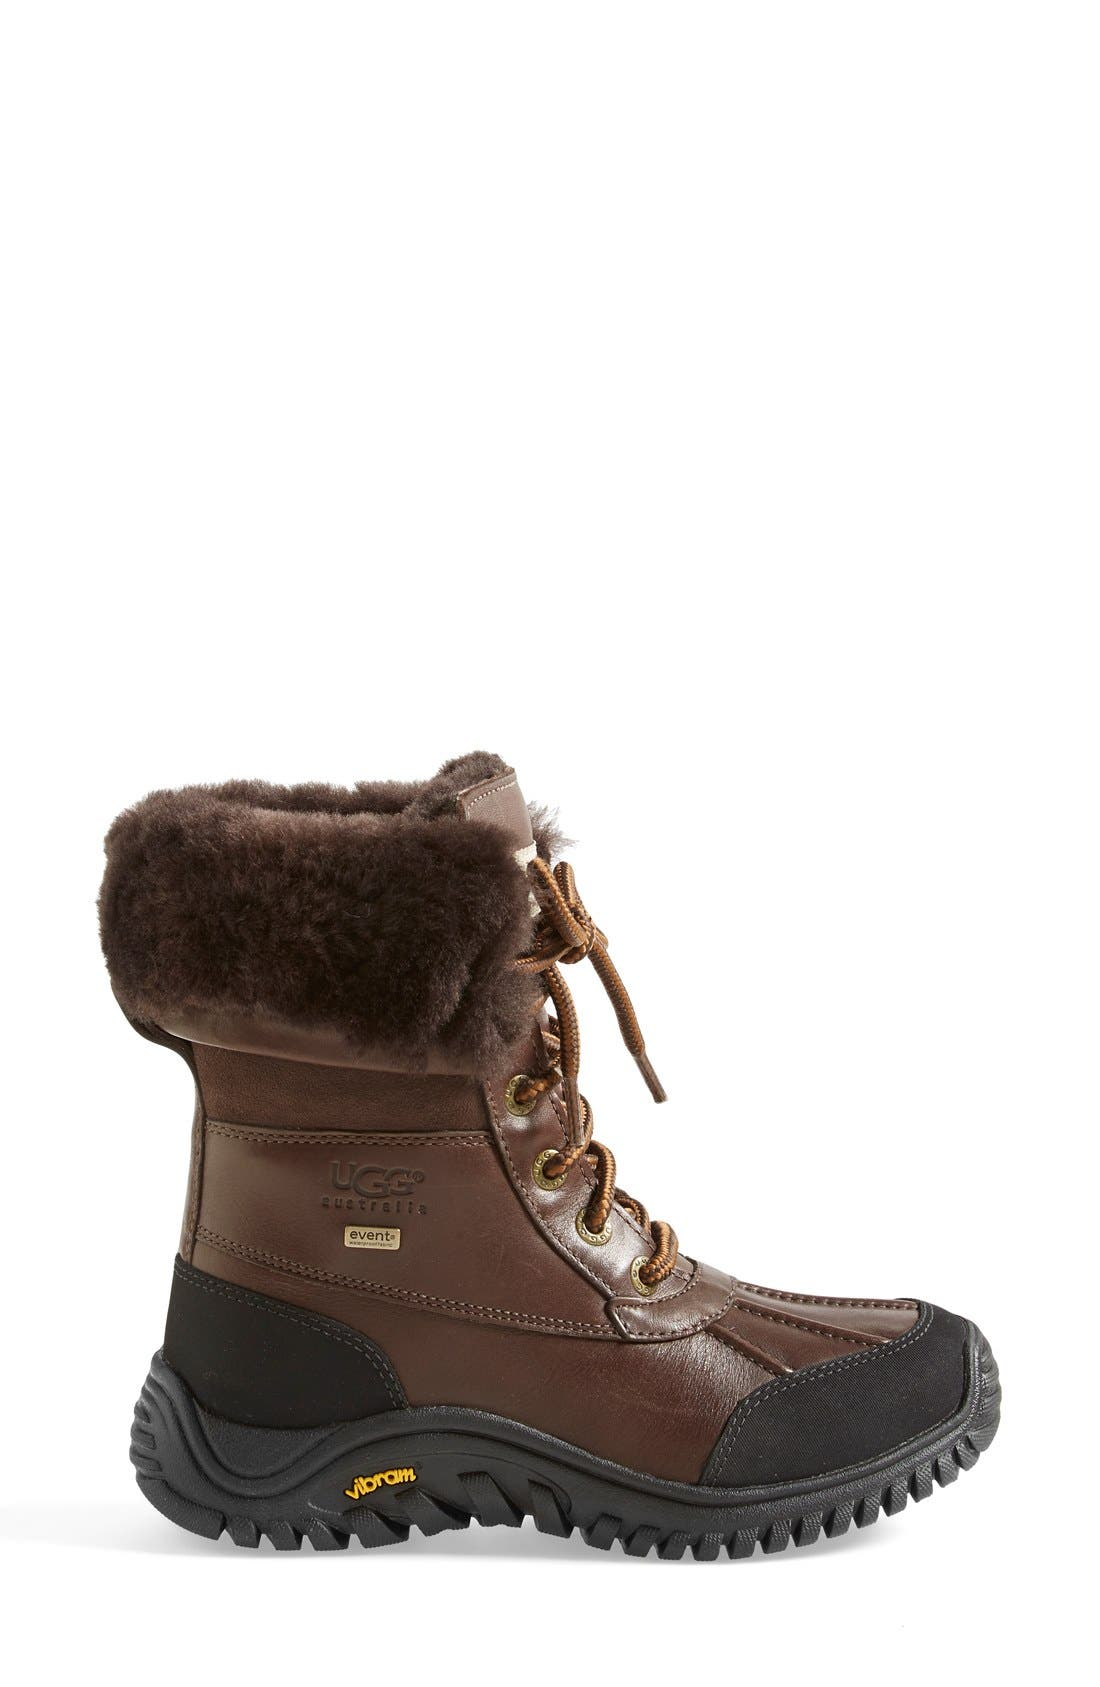 Adirondack II Waterproof Boot,                             Alternate thumbnail 53, color,